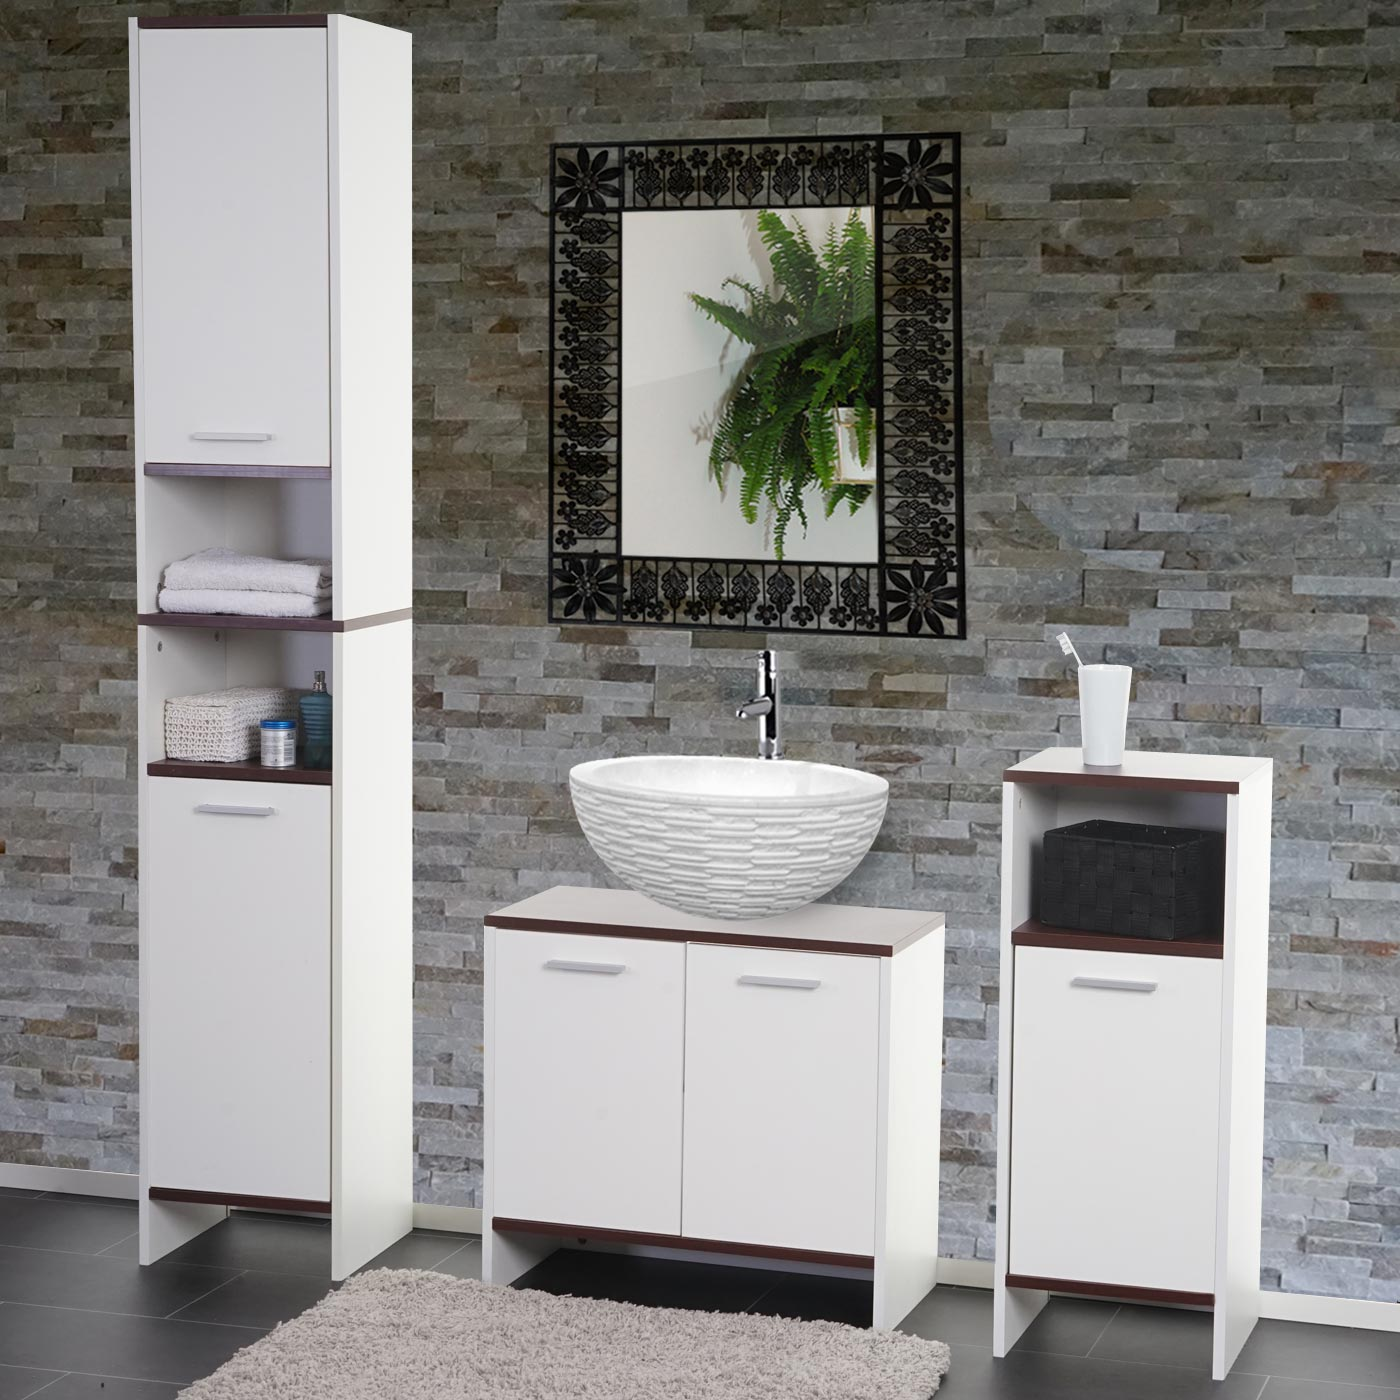 badezimmer set arezzo waschbeckenunterschrank hochschrank kommode wei b den braun. Black Bedroom Furniture Sets. Home Design Ideas